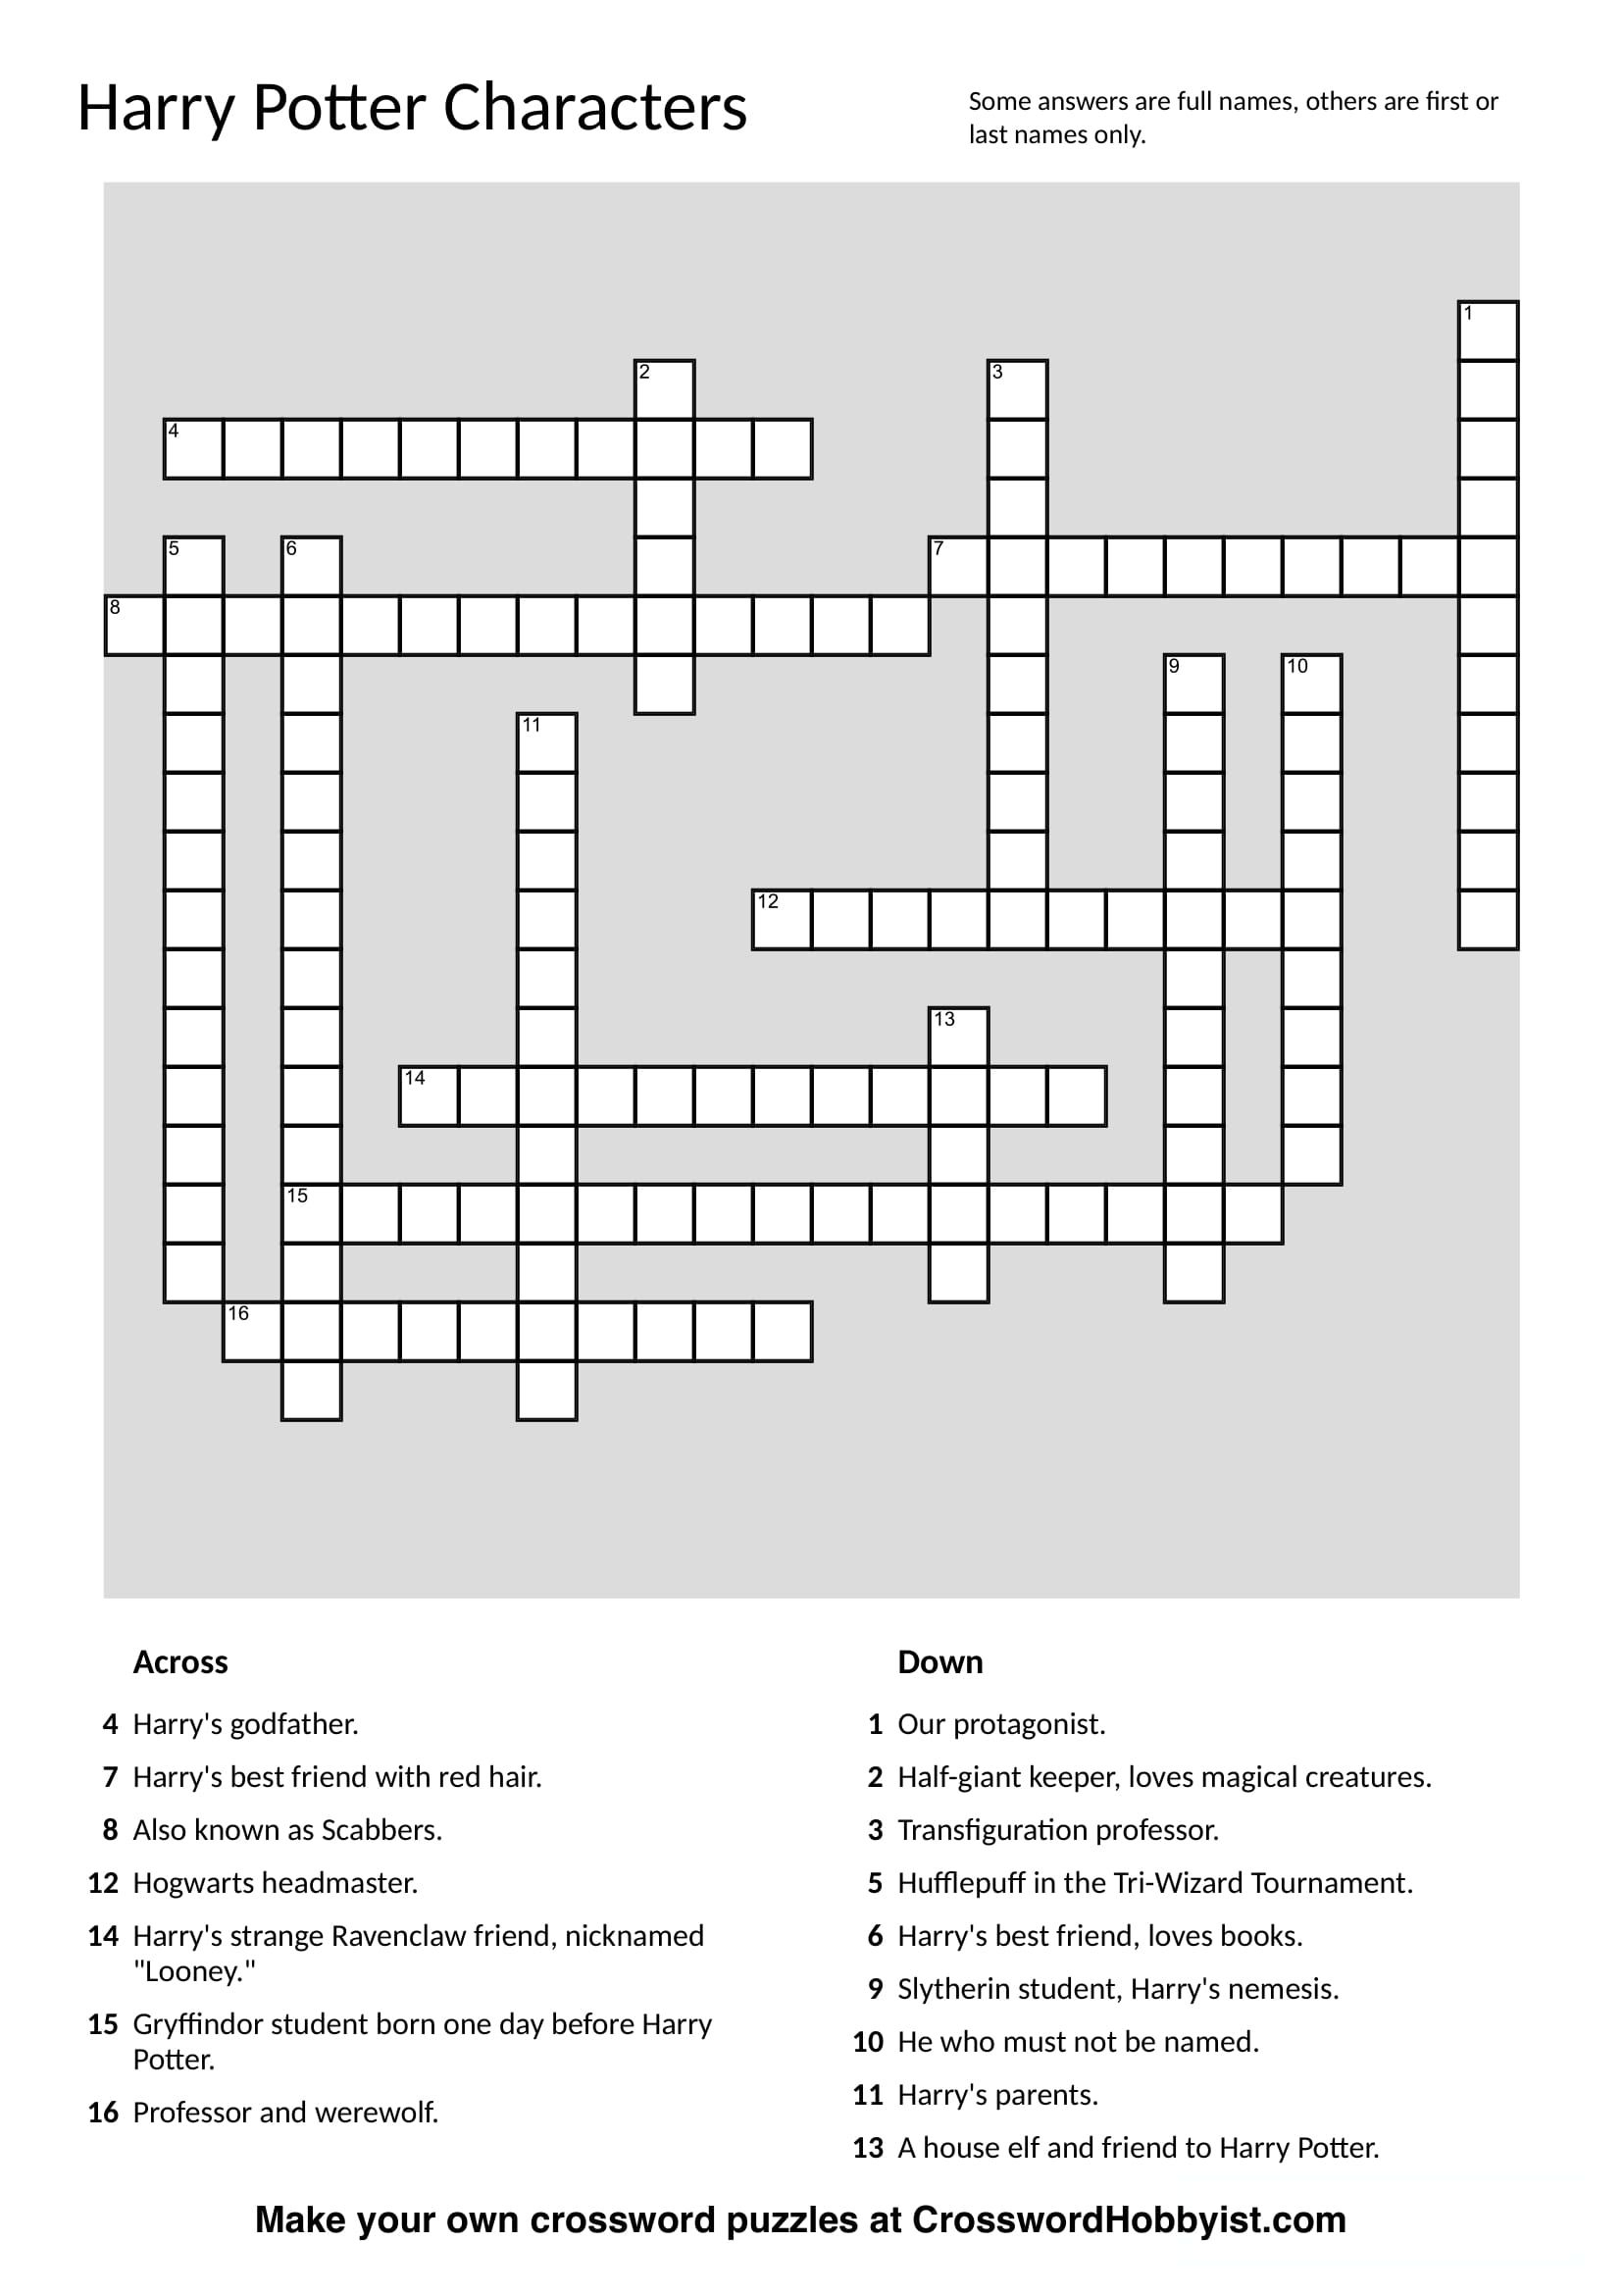 This Harry Potter Characters Crossword Puzzle Was Made At - Create Own Crossword Puzzles Printable